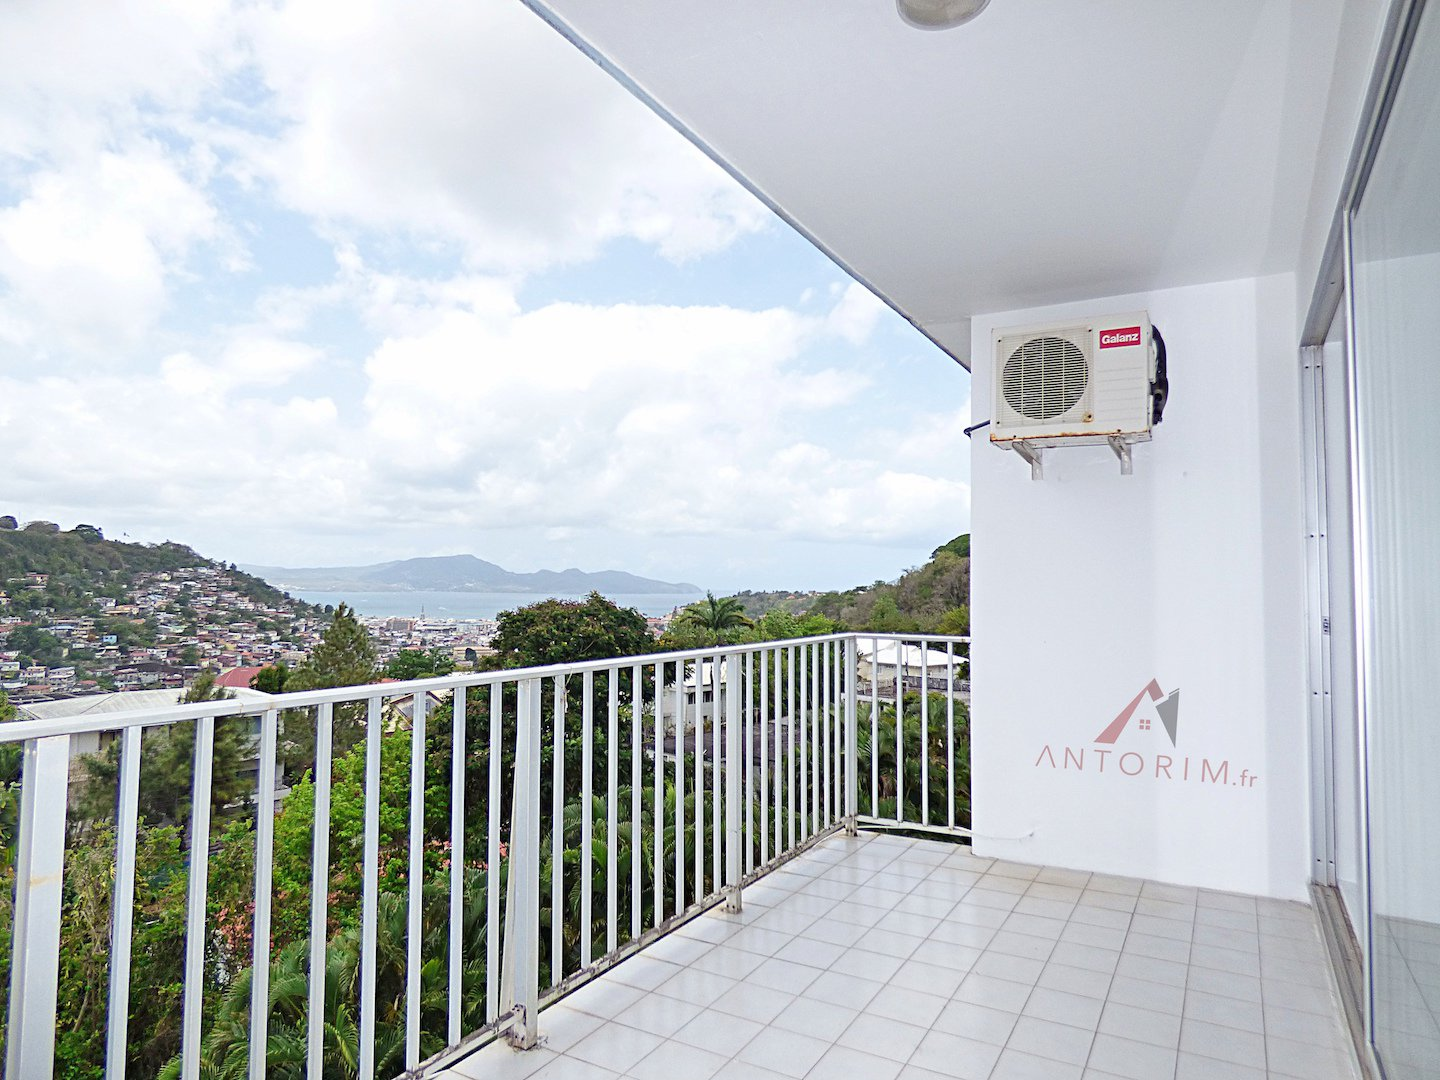 EXCLUSIVITE - Balata - Beau T3 - Terrasse - Vue Mer - Cave - Parking